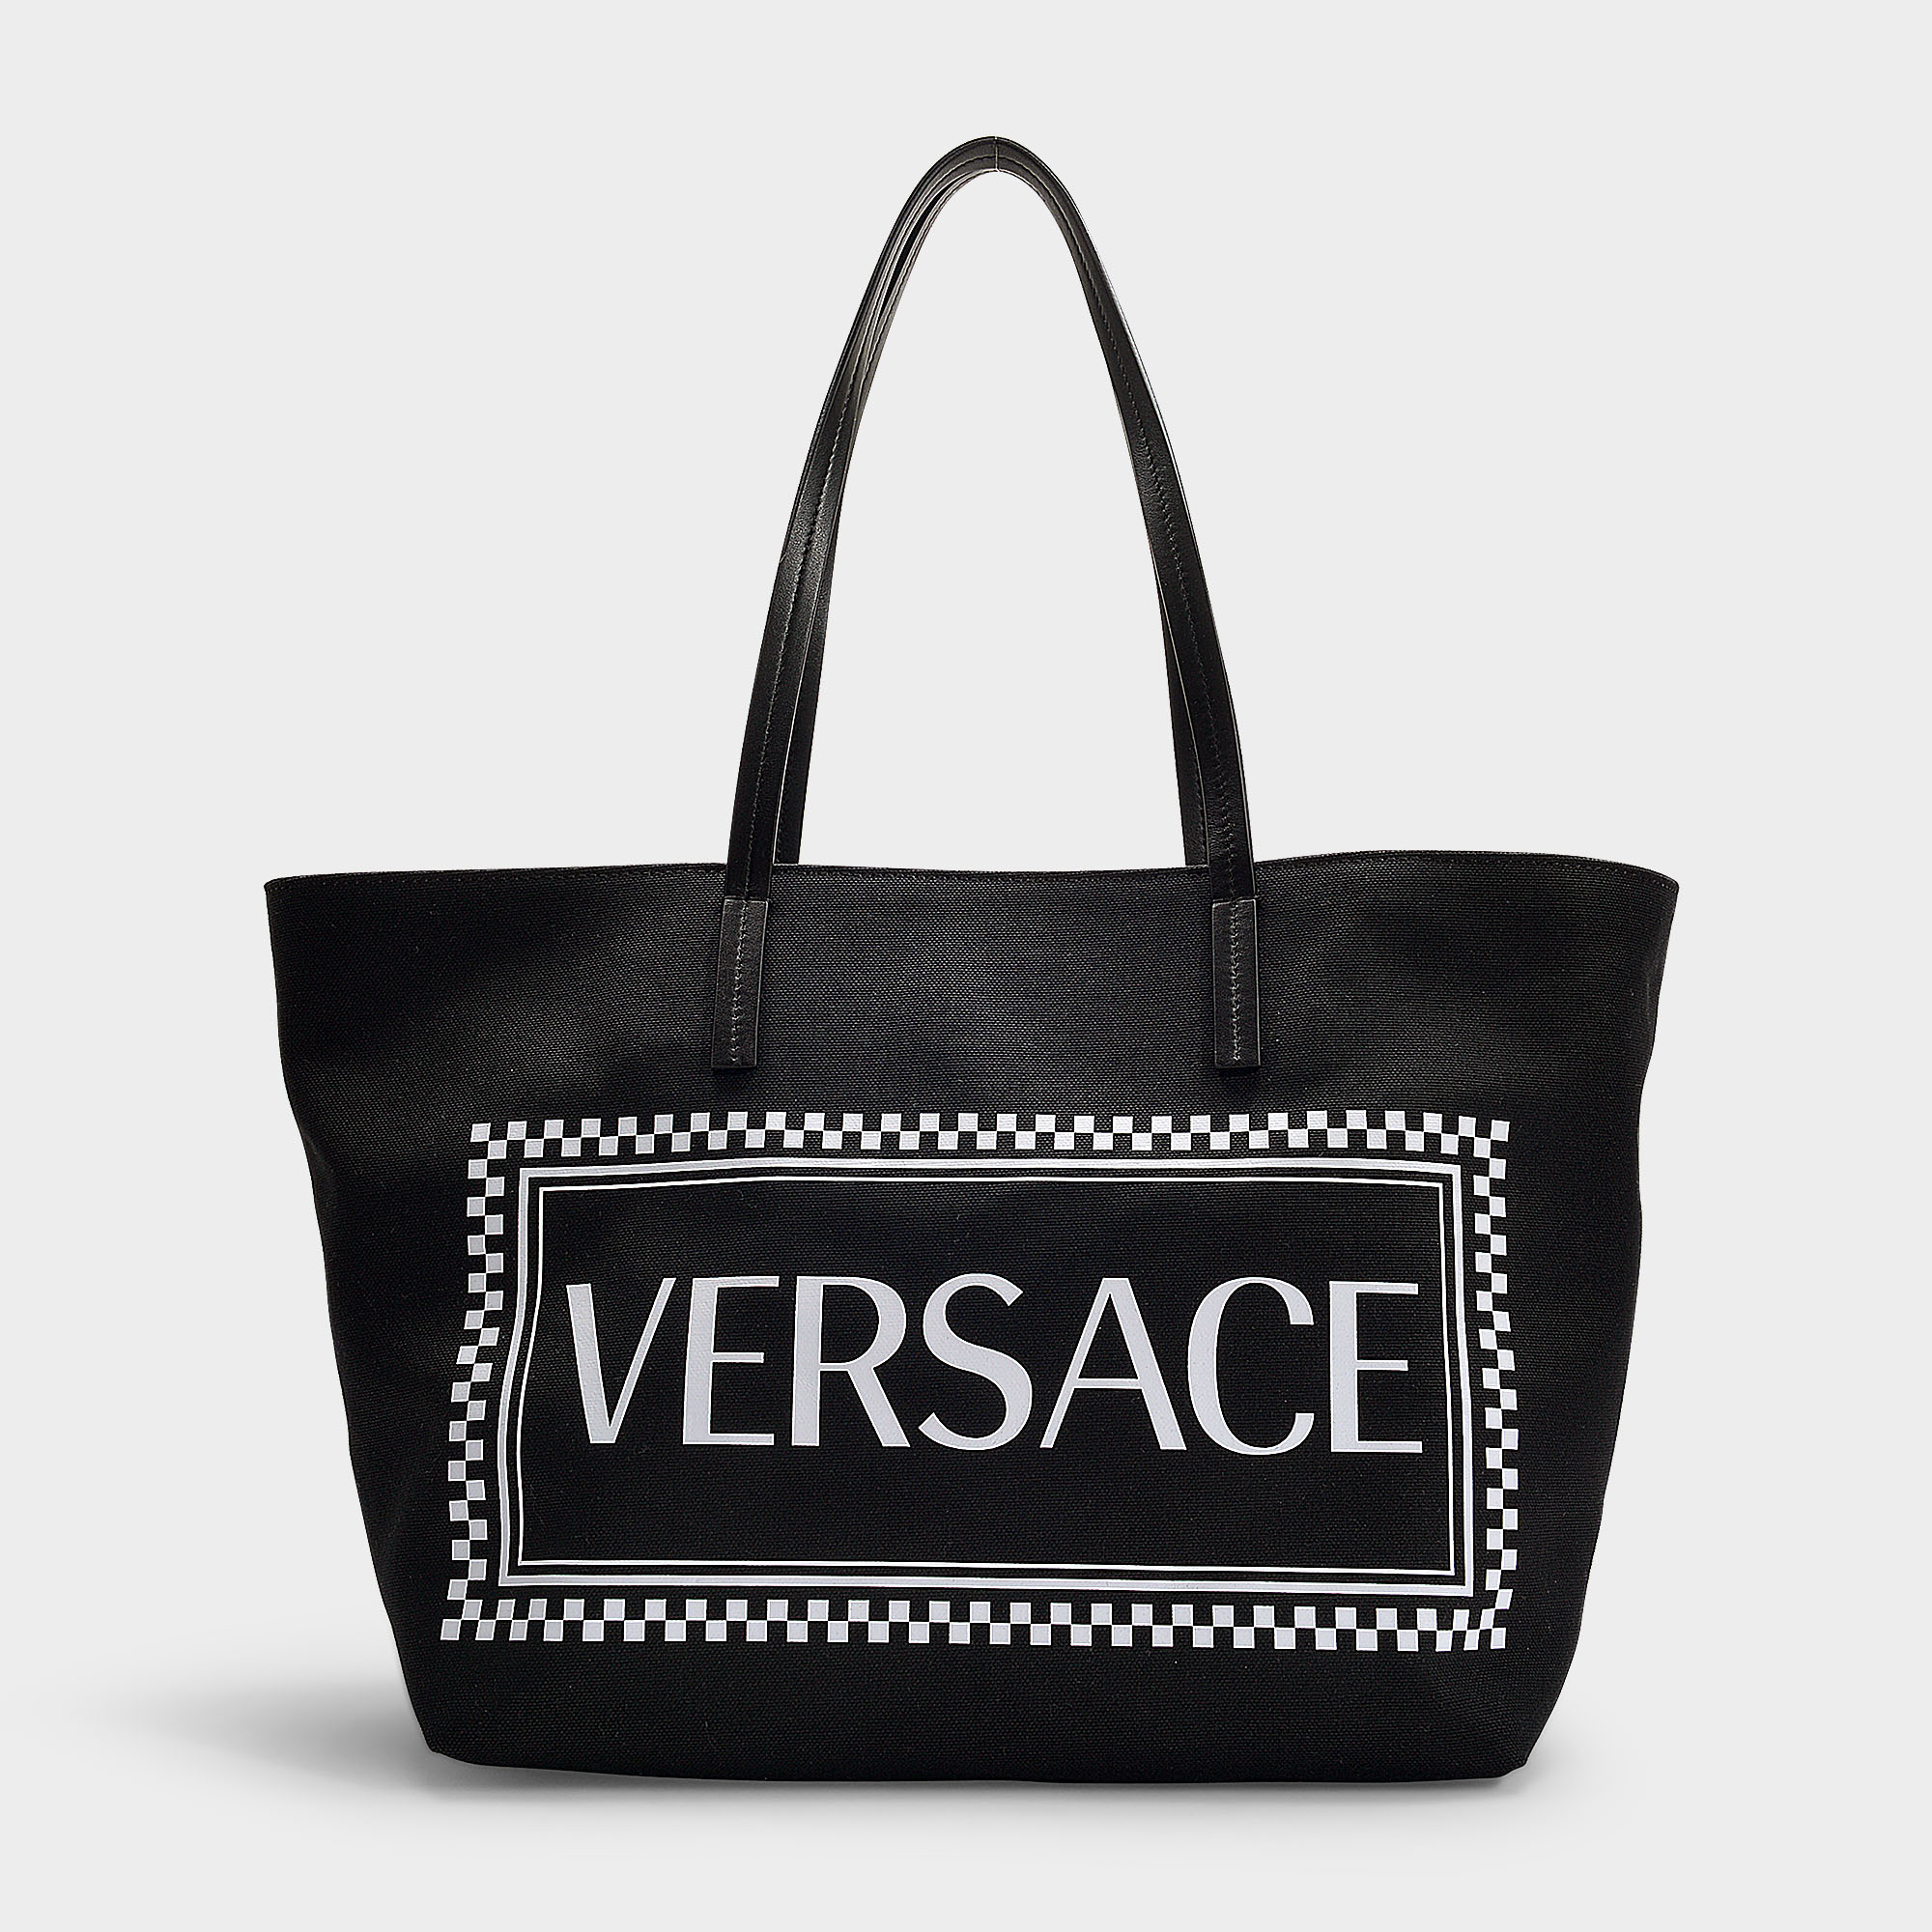 9ed312b8a2 Versace | 90's Vintage Logo Tote In Black And White Nylon | ModeSens